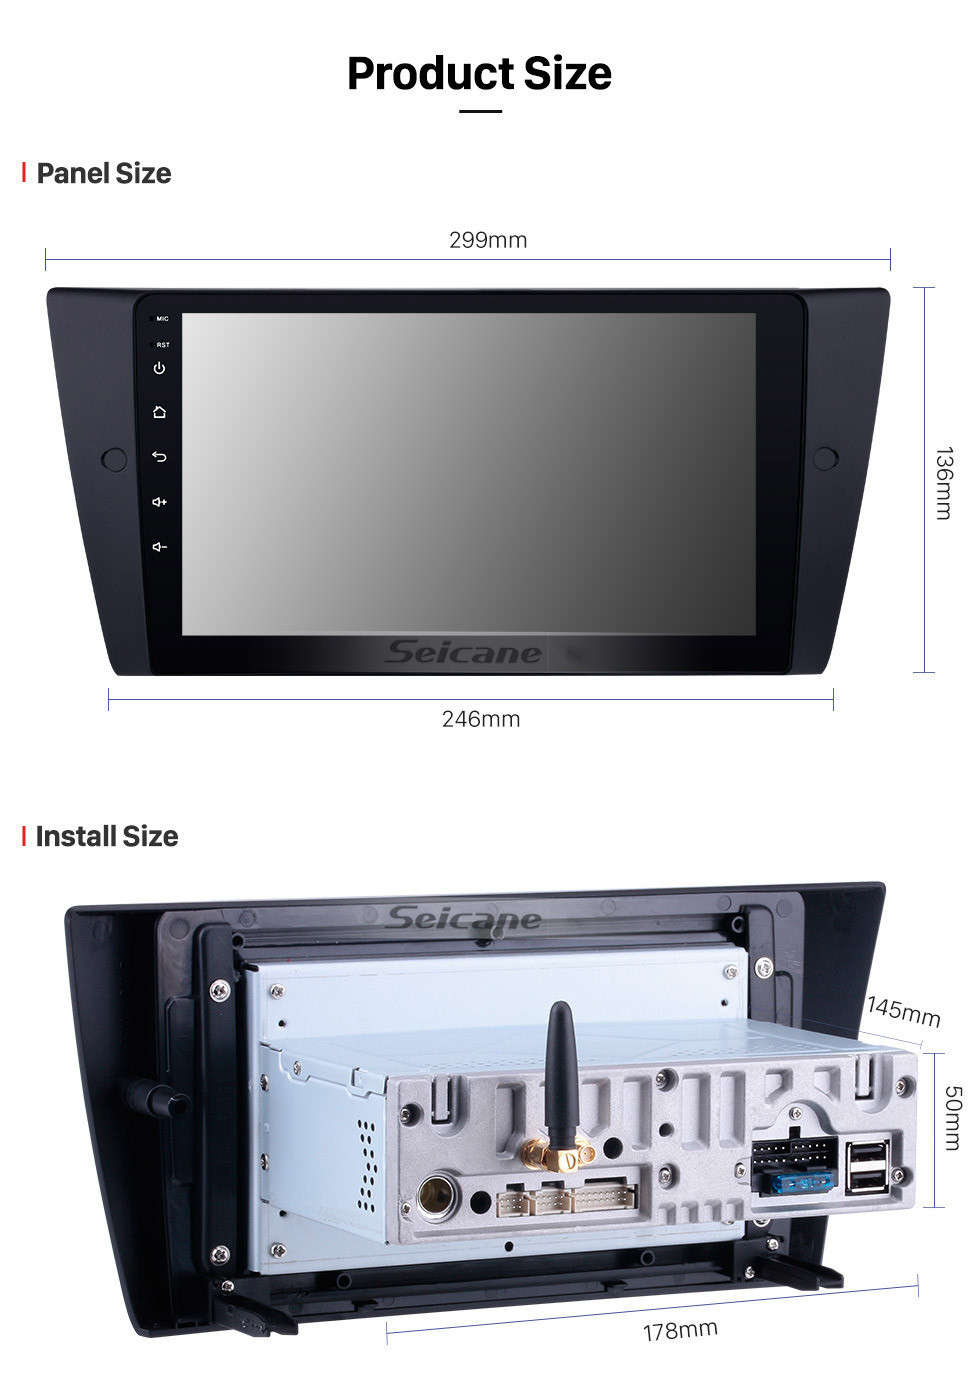 Seicane 9 inch Android 10.0 GPS Navigation System Radio for 2005-2012 BMW 3 Series E90 E91 E92 E93 316i 318i 320i 320si 323i 325i 328i 330i 335i 335is M3 316d 318d 320d 325d 330d 335d with HD Touchscreen Bluetooth Carplay support Steering Wheel Control